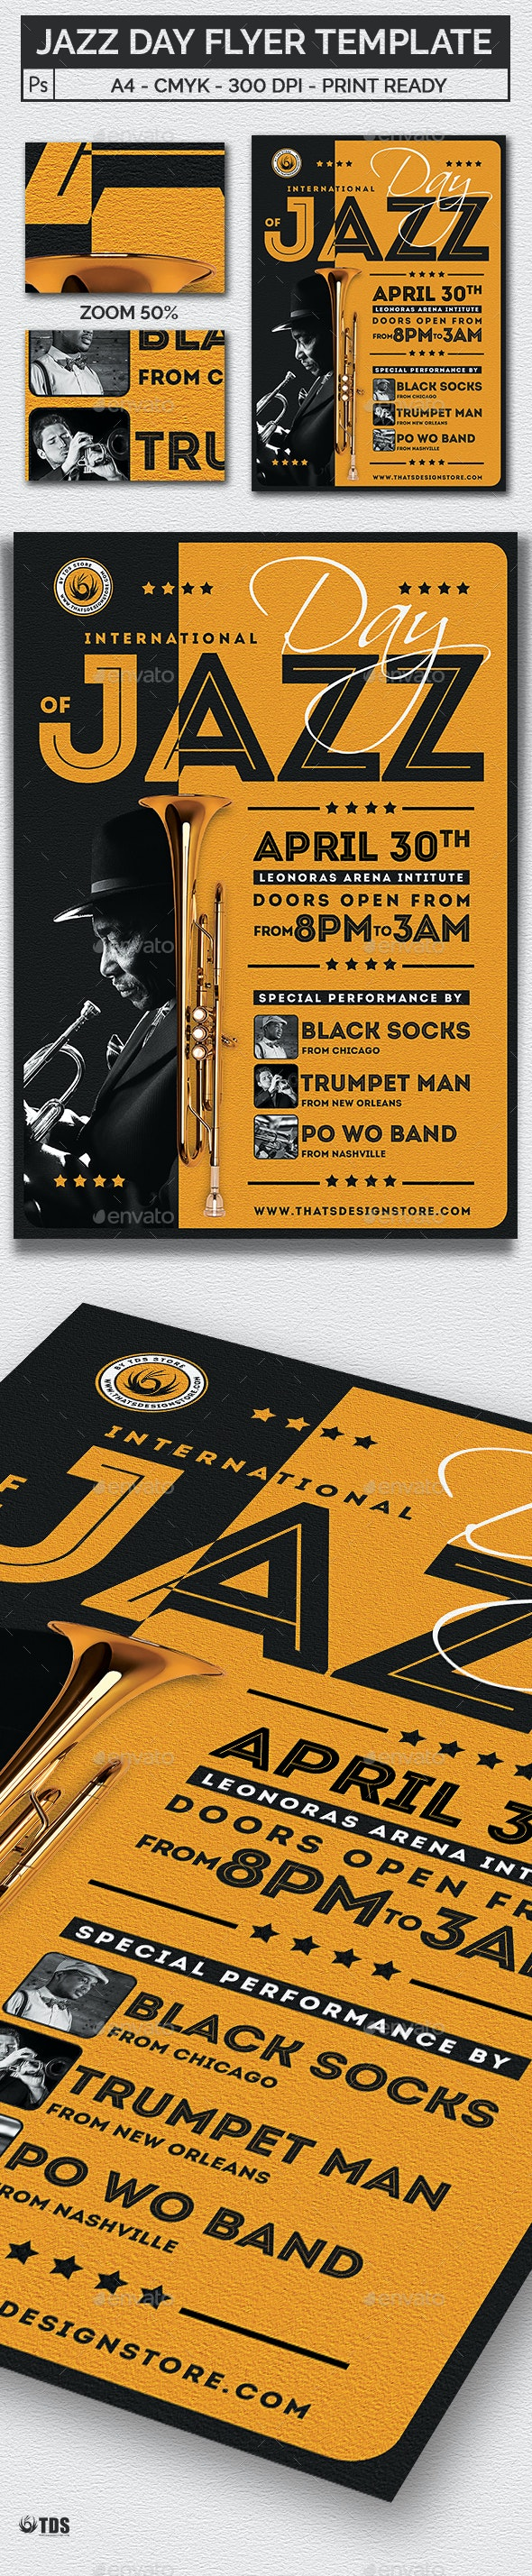 Jazz Day Flyer Template - Concerts Events